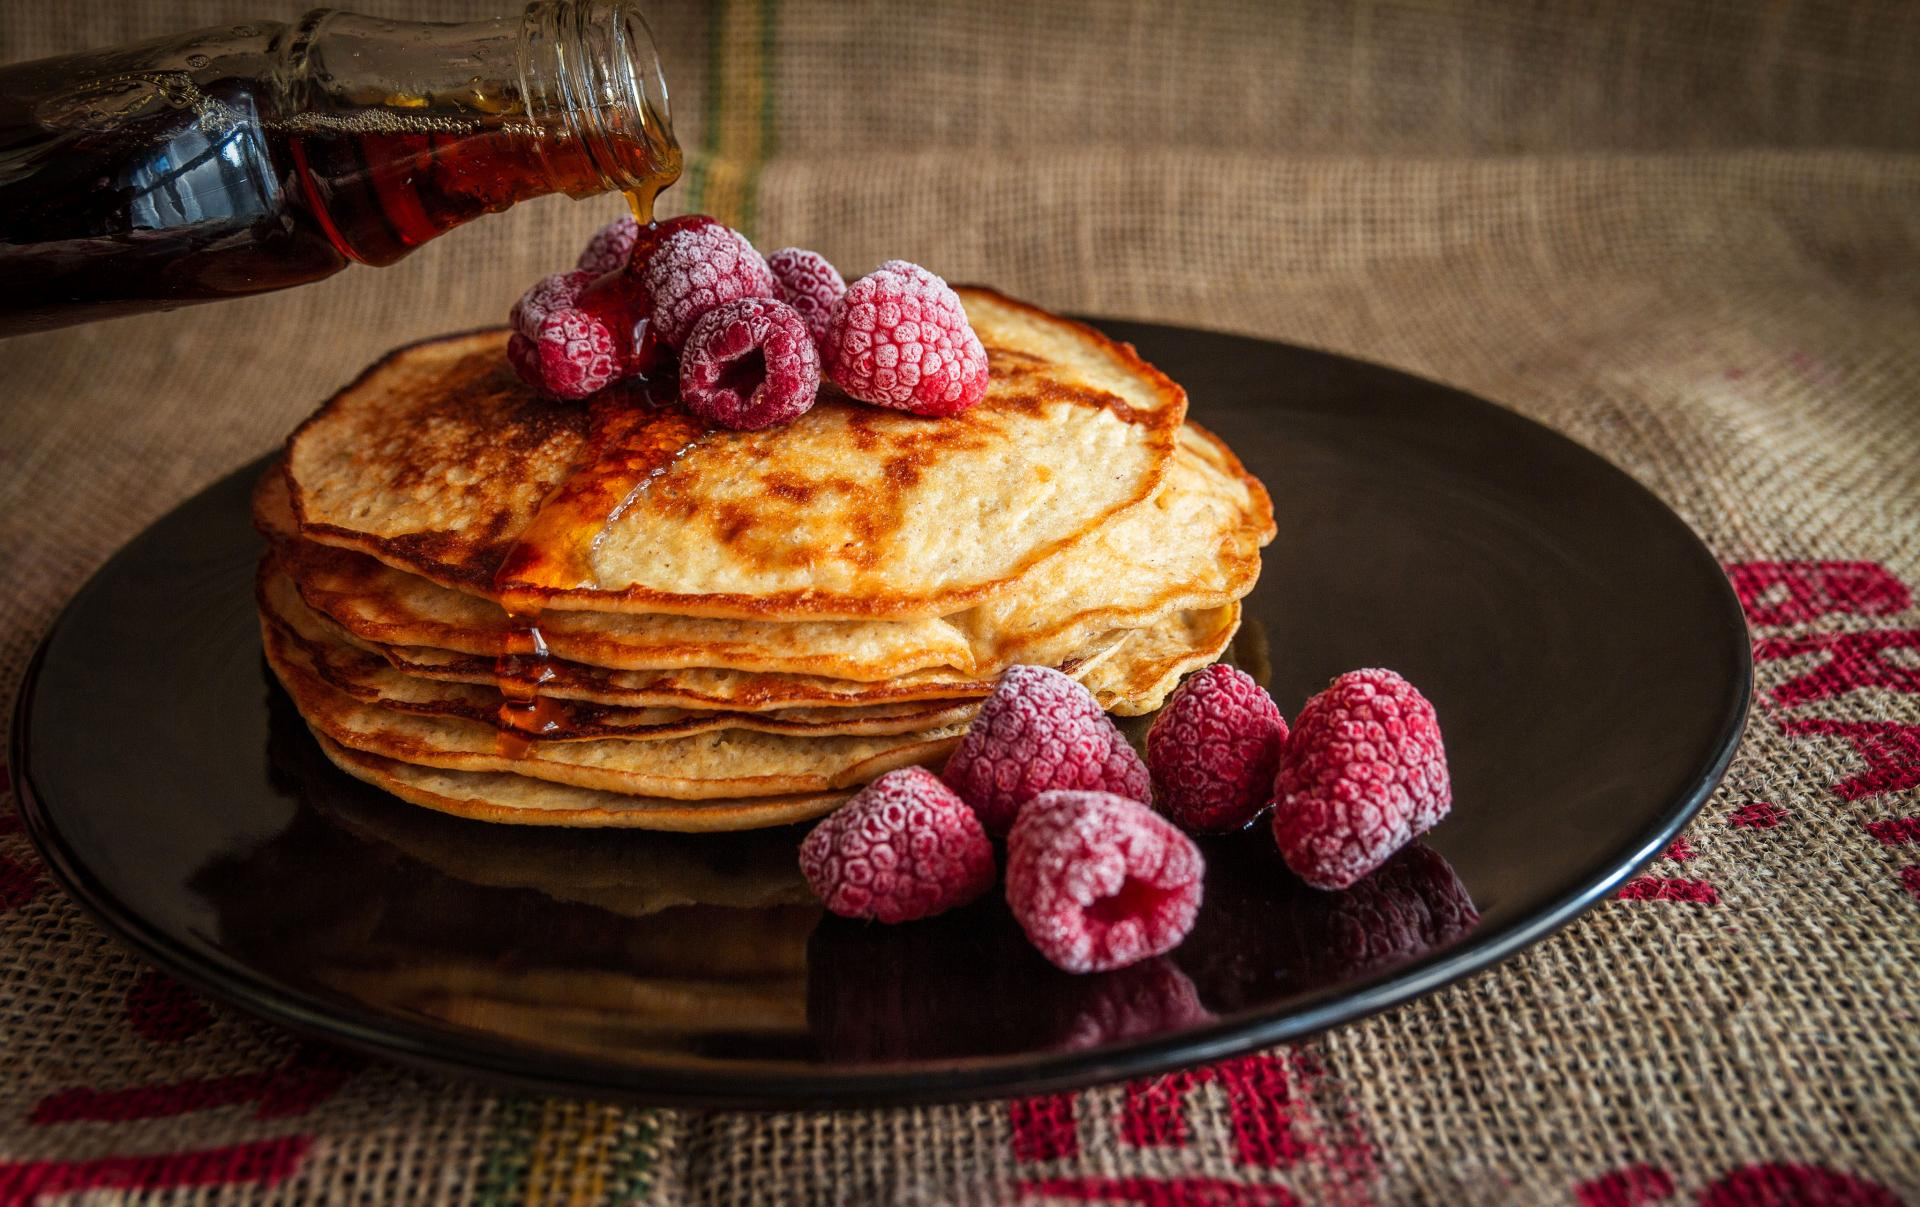 Top Places to Eat Pancakes on Shrove Tuesday